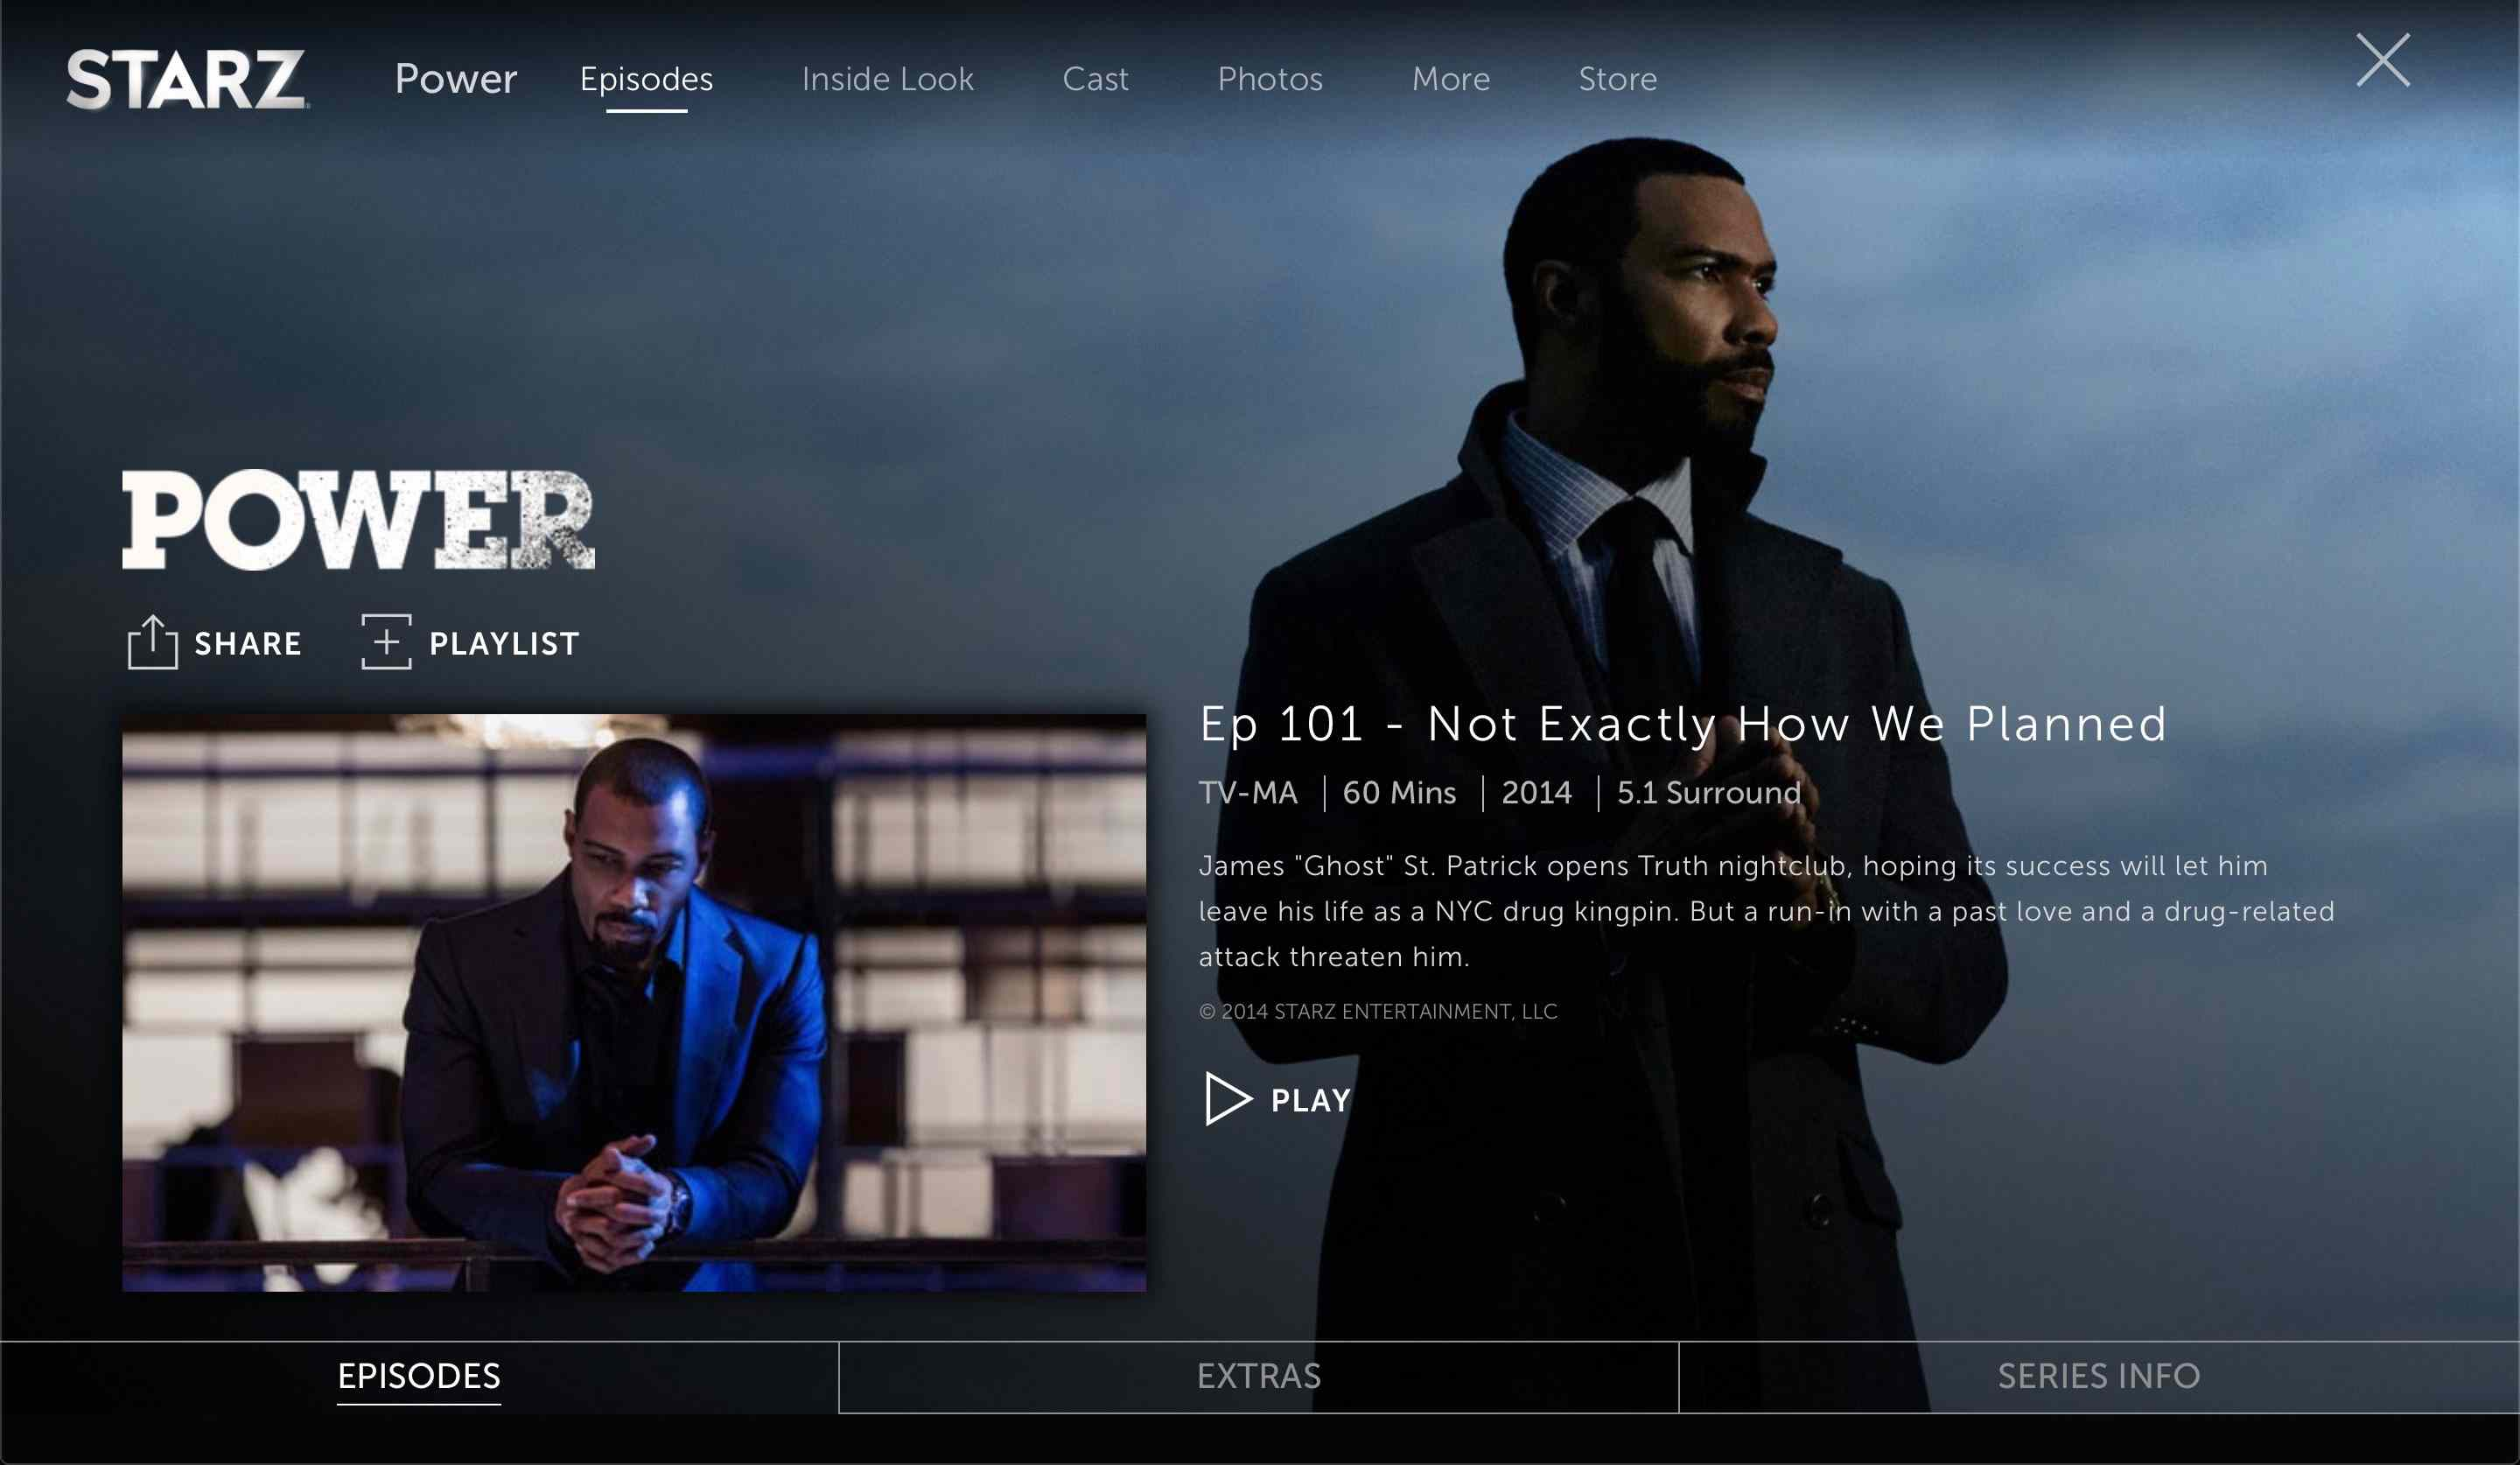 A TV show page on Starz